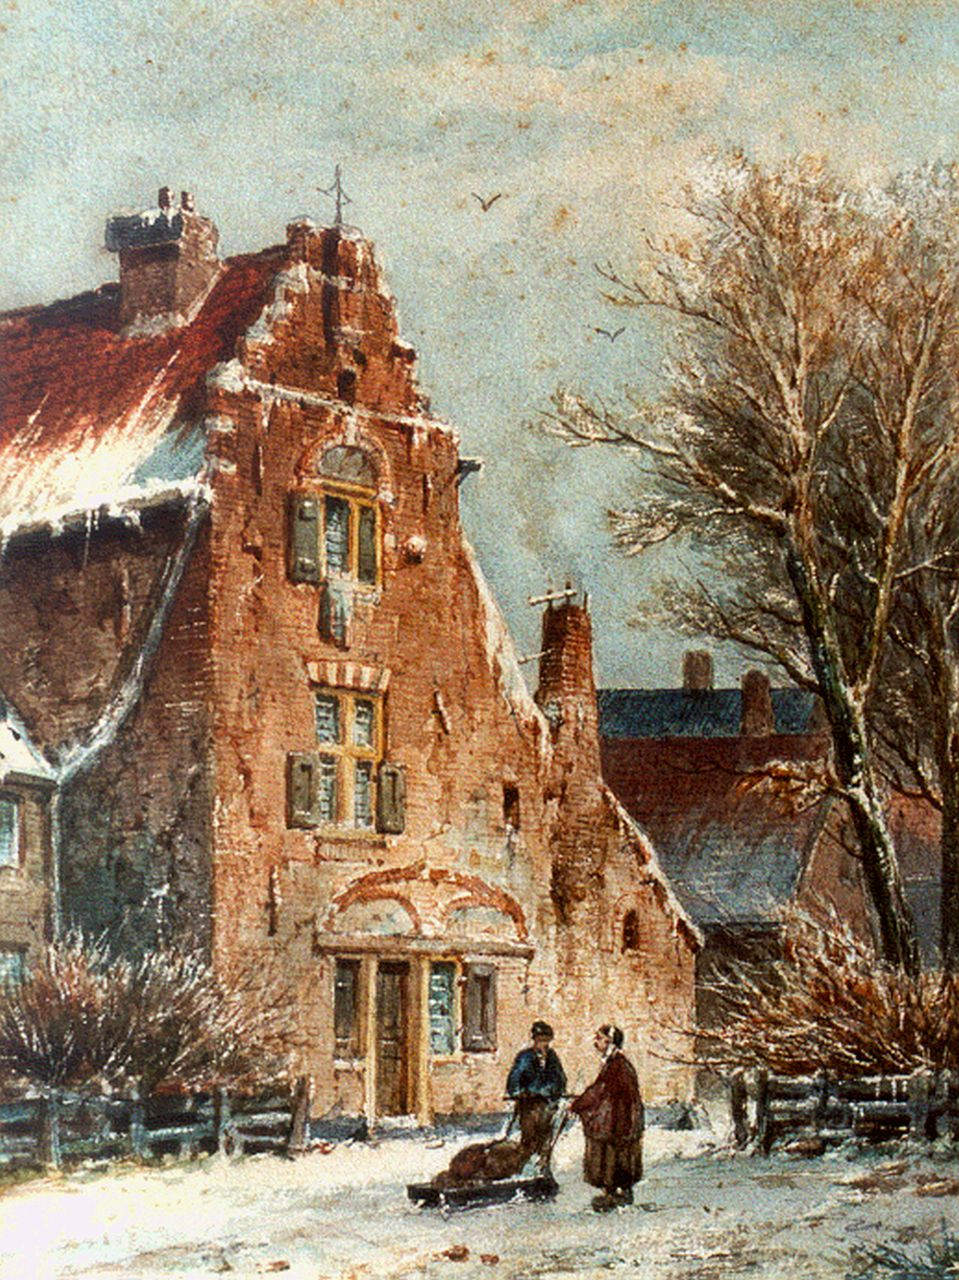 Eversen A.  | Adrianus Eversen, Figures in a snow-covered town, watercolour on paper 27.3 x 21.3 cm, signed l.l. and on the reverse